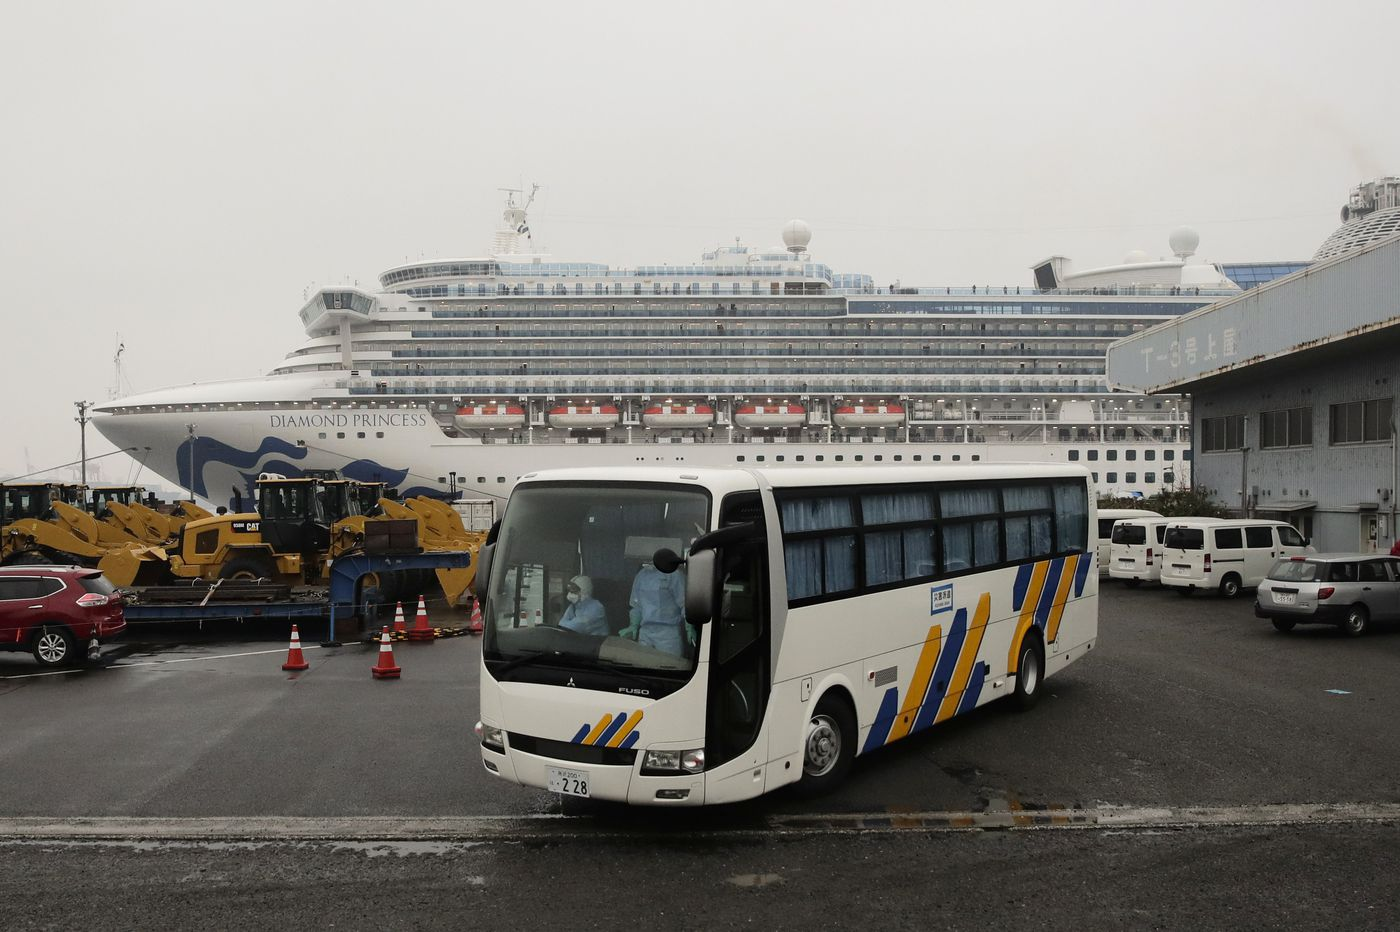 Trading quarantines, Americans from cruise land in U.S.